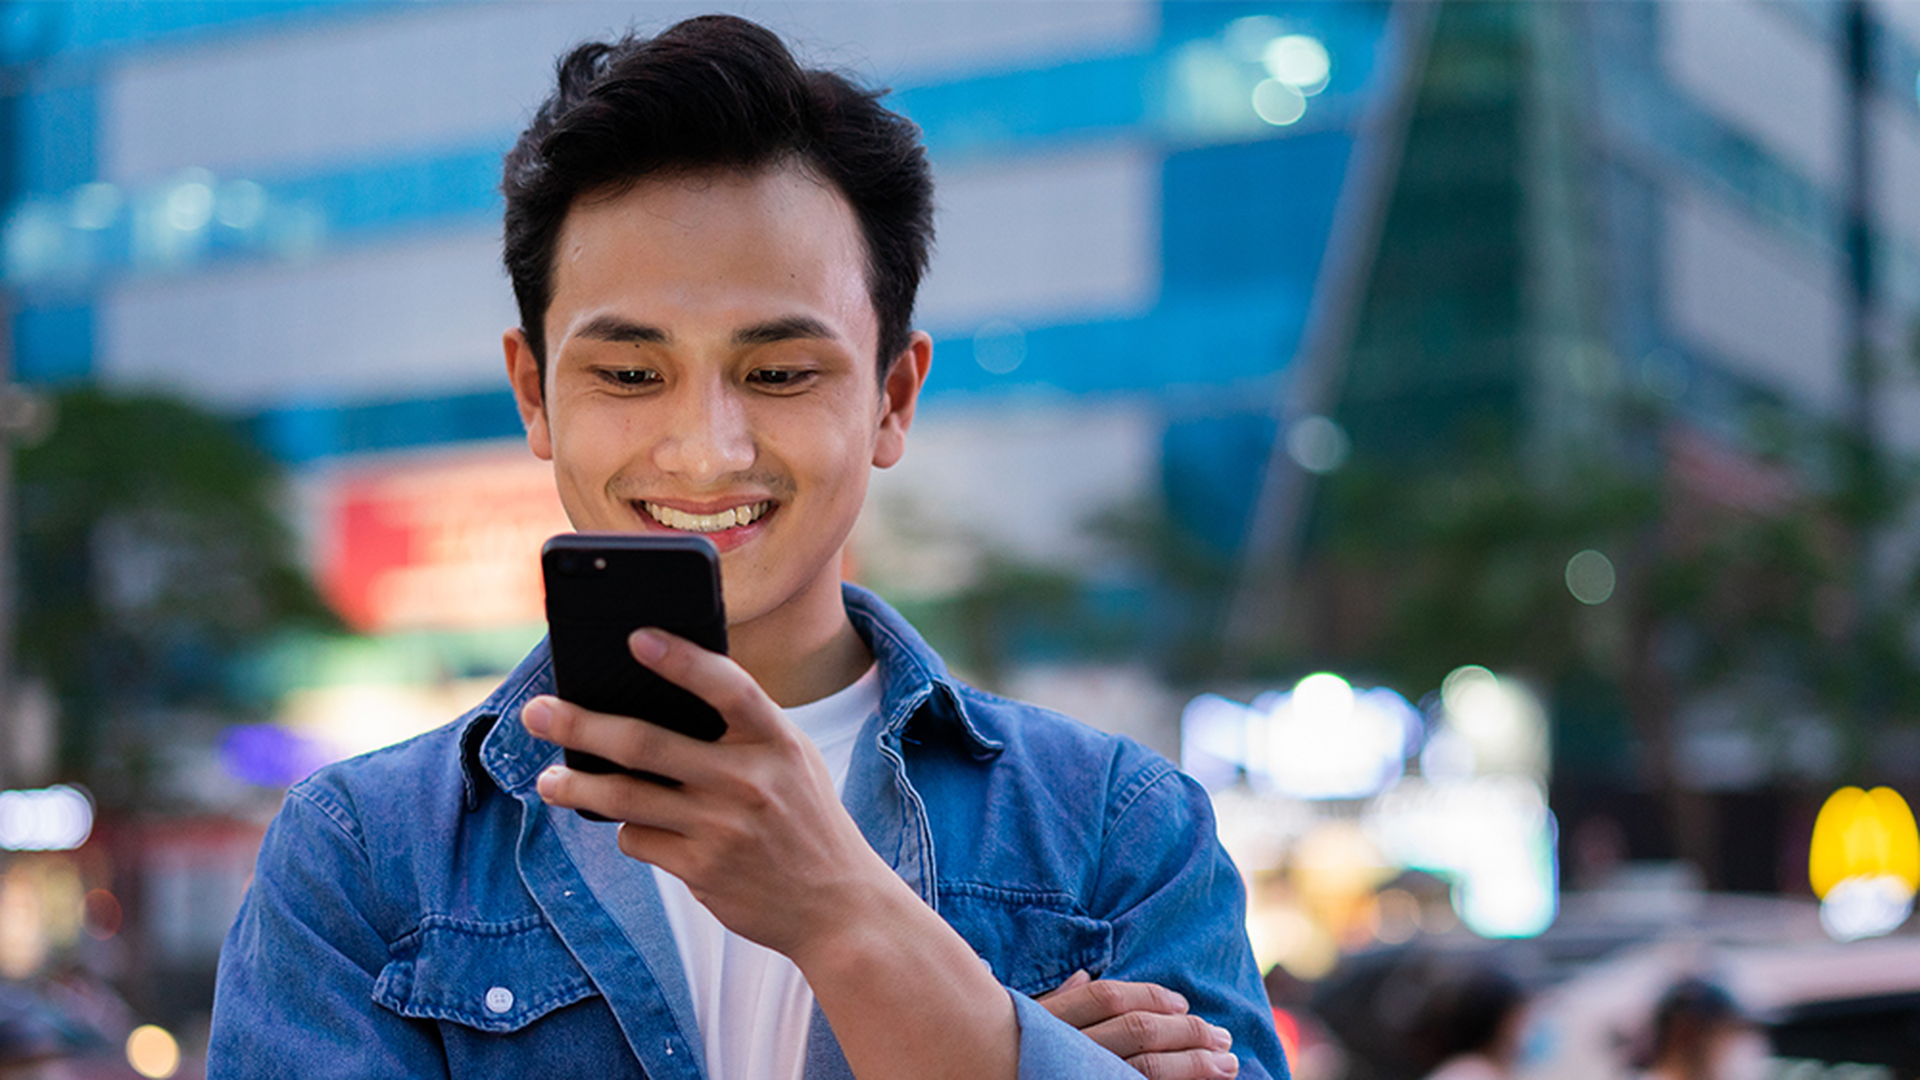 LINK Mobility - Marketing mit WhatsApp: So geht's mit Non-Transactional Notifications